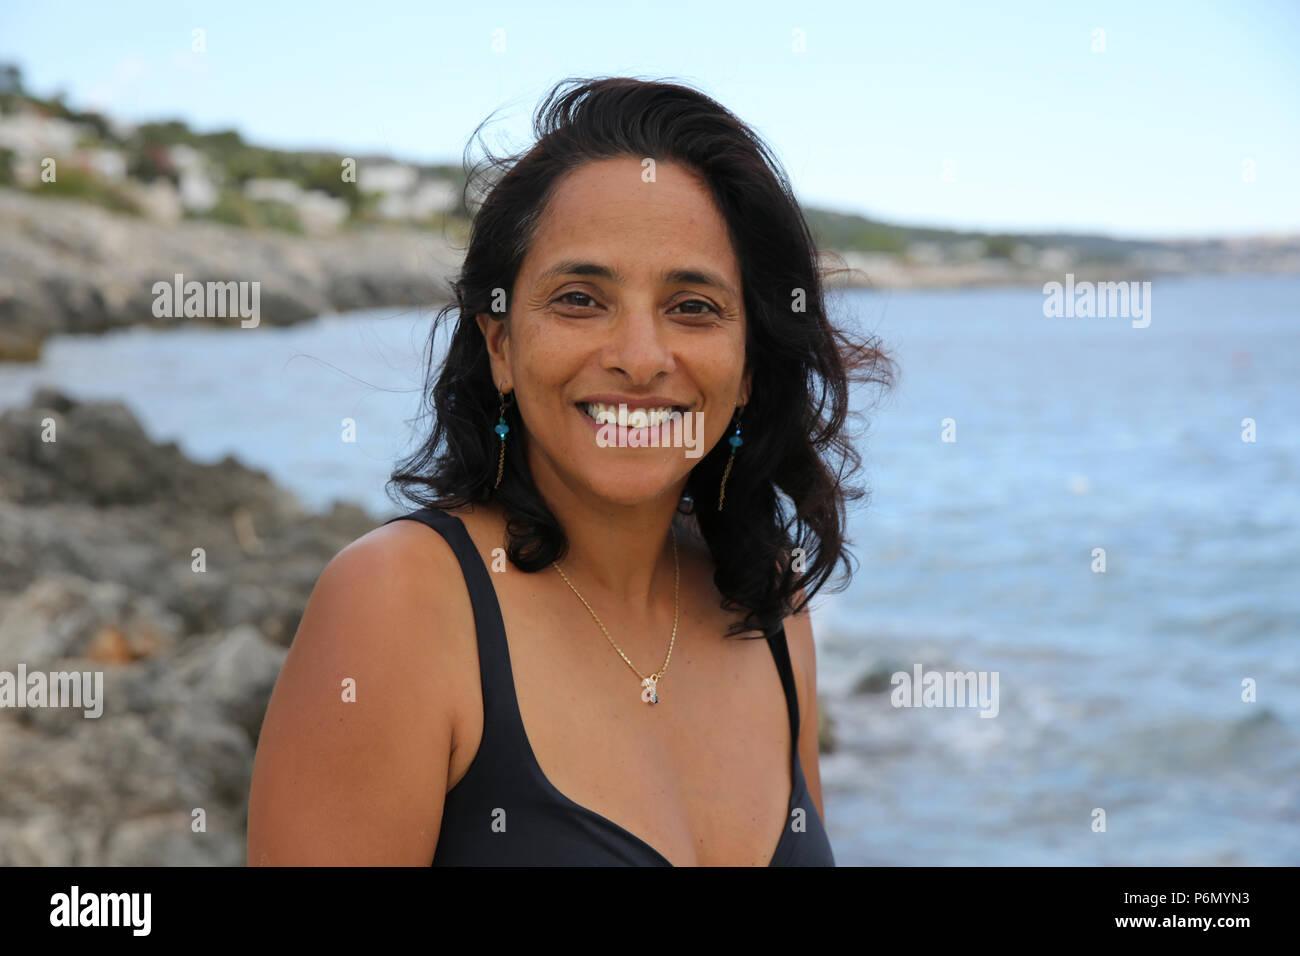 40-year-old woman in Salento, Italy. - Stock Image